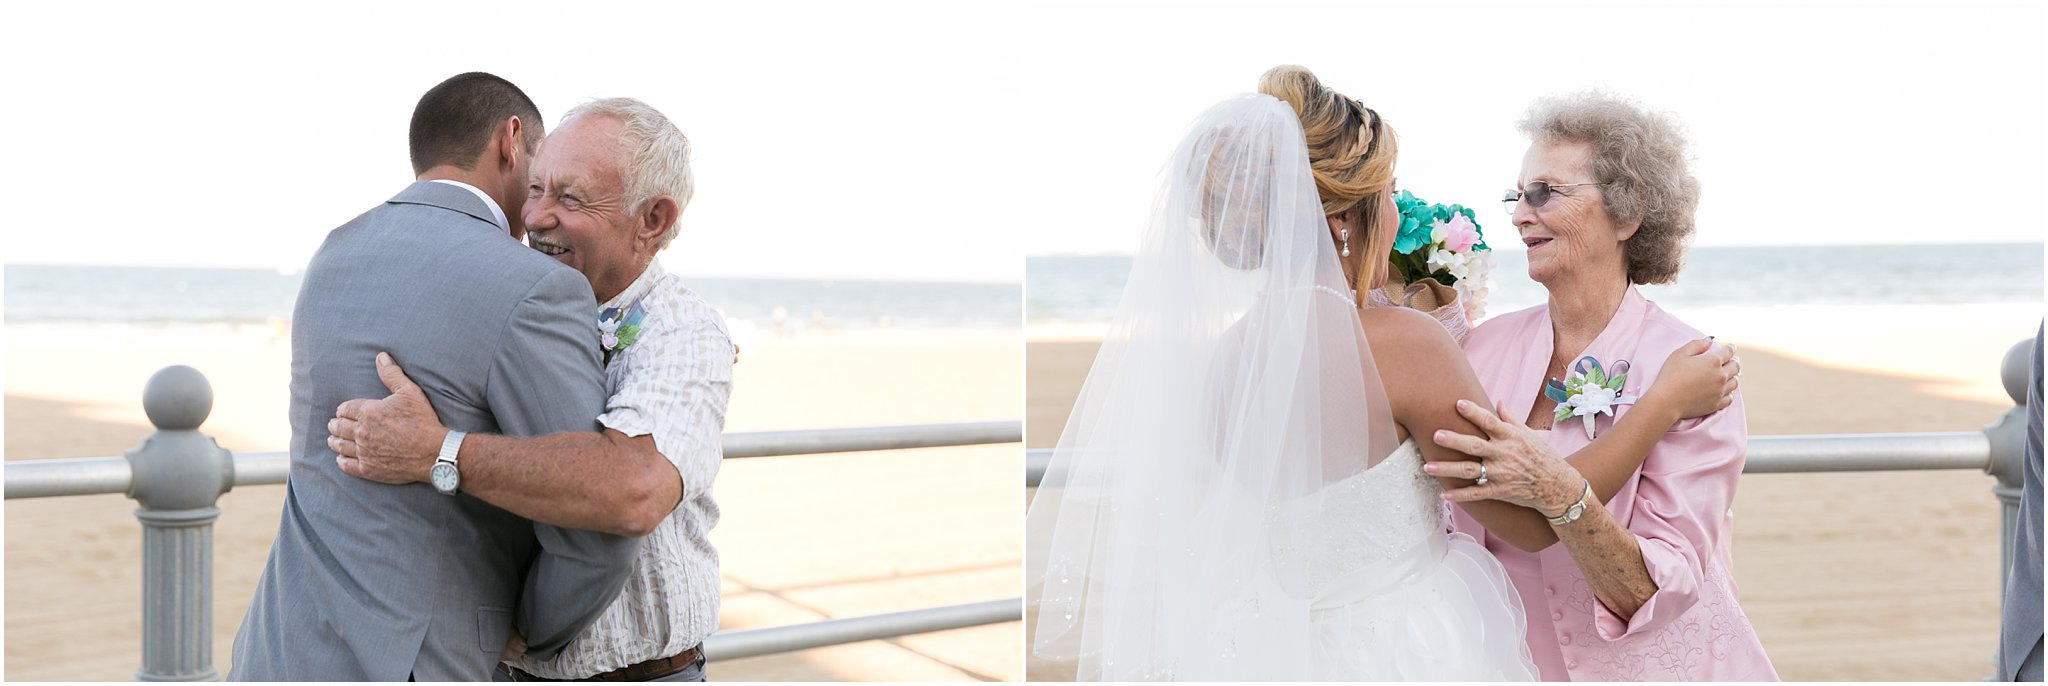 jessica_ryan_photography_wedding_virginia_beach_oceanfront_holiday_inn_north_suites_hotel_wedding_0752